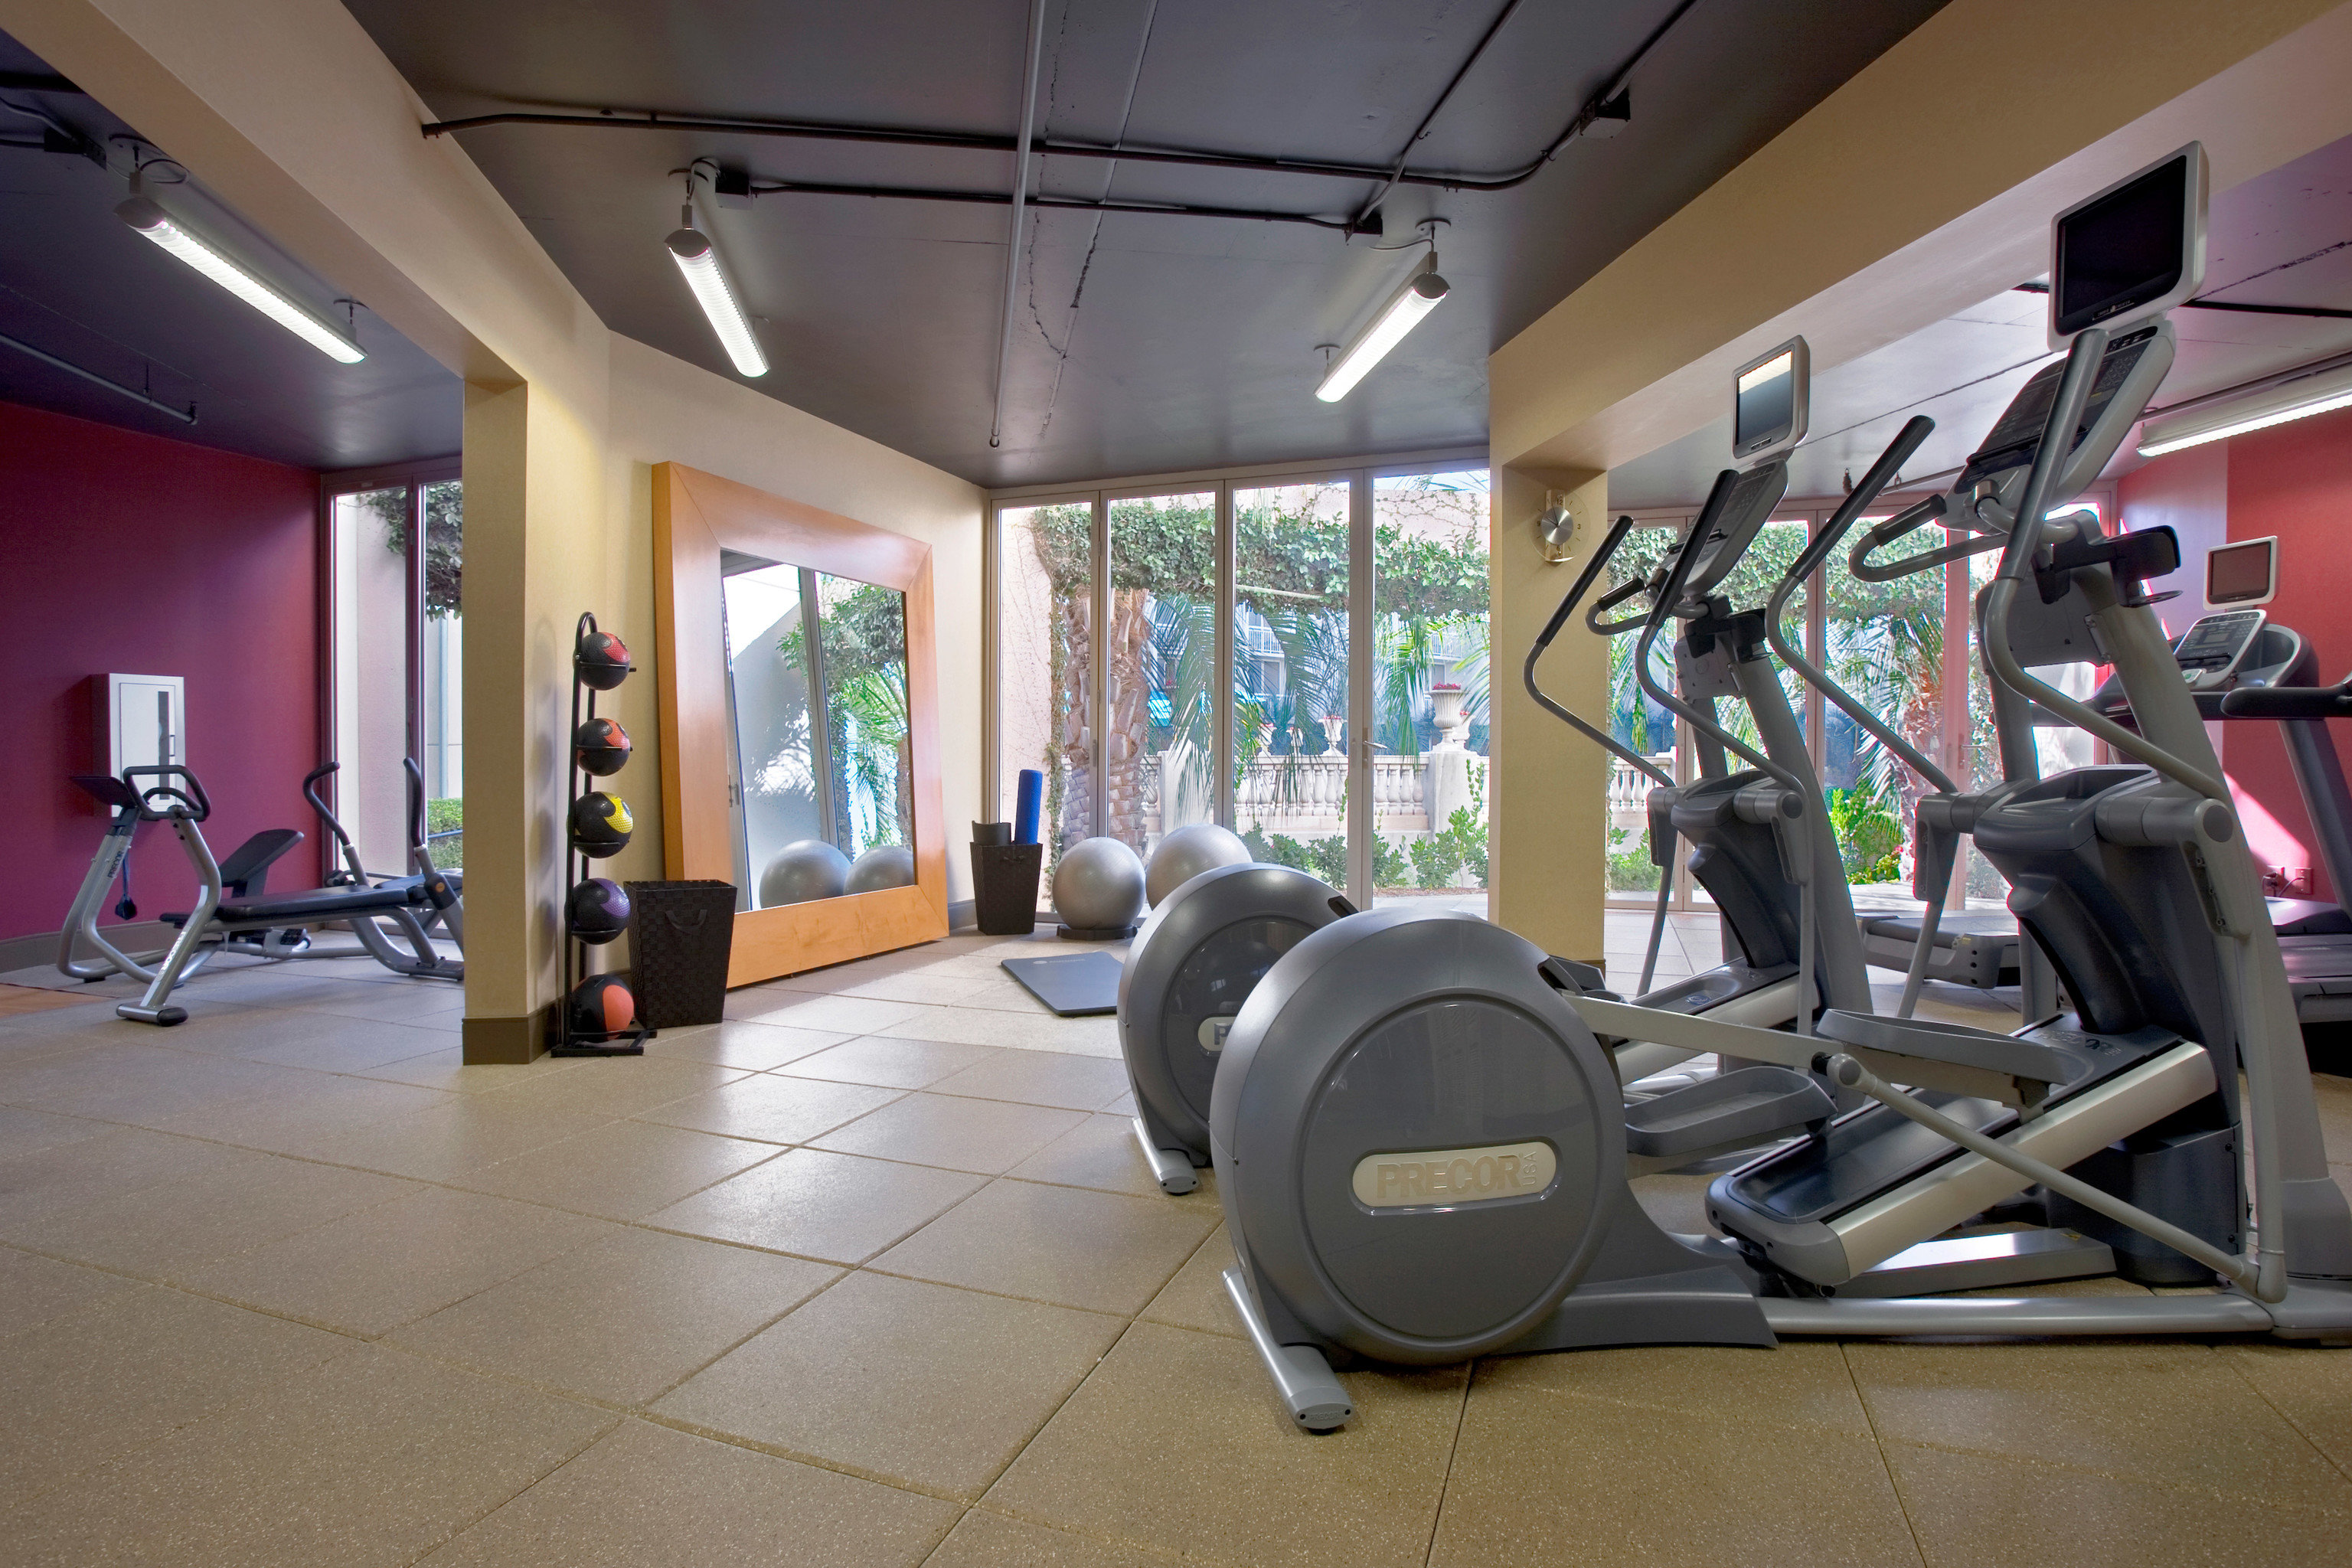 structure gym sport venue Sport leisure muscle physical fitness